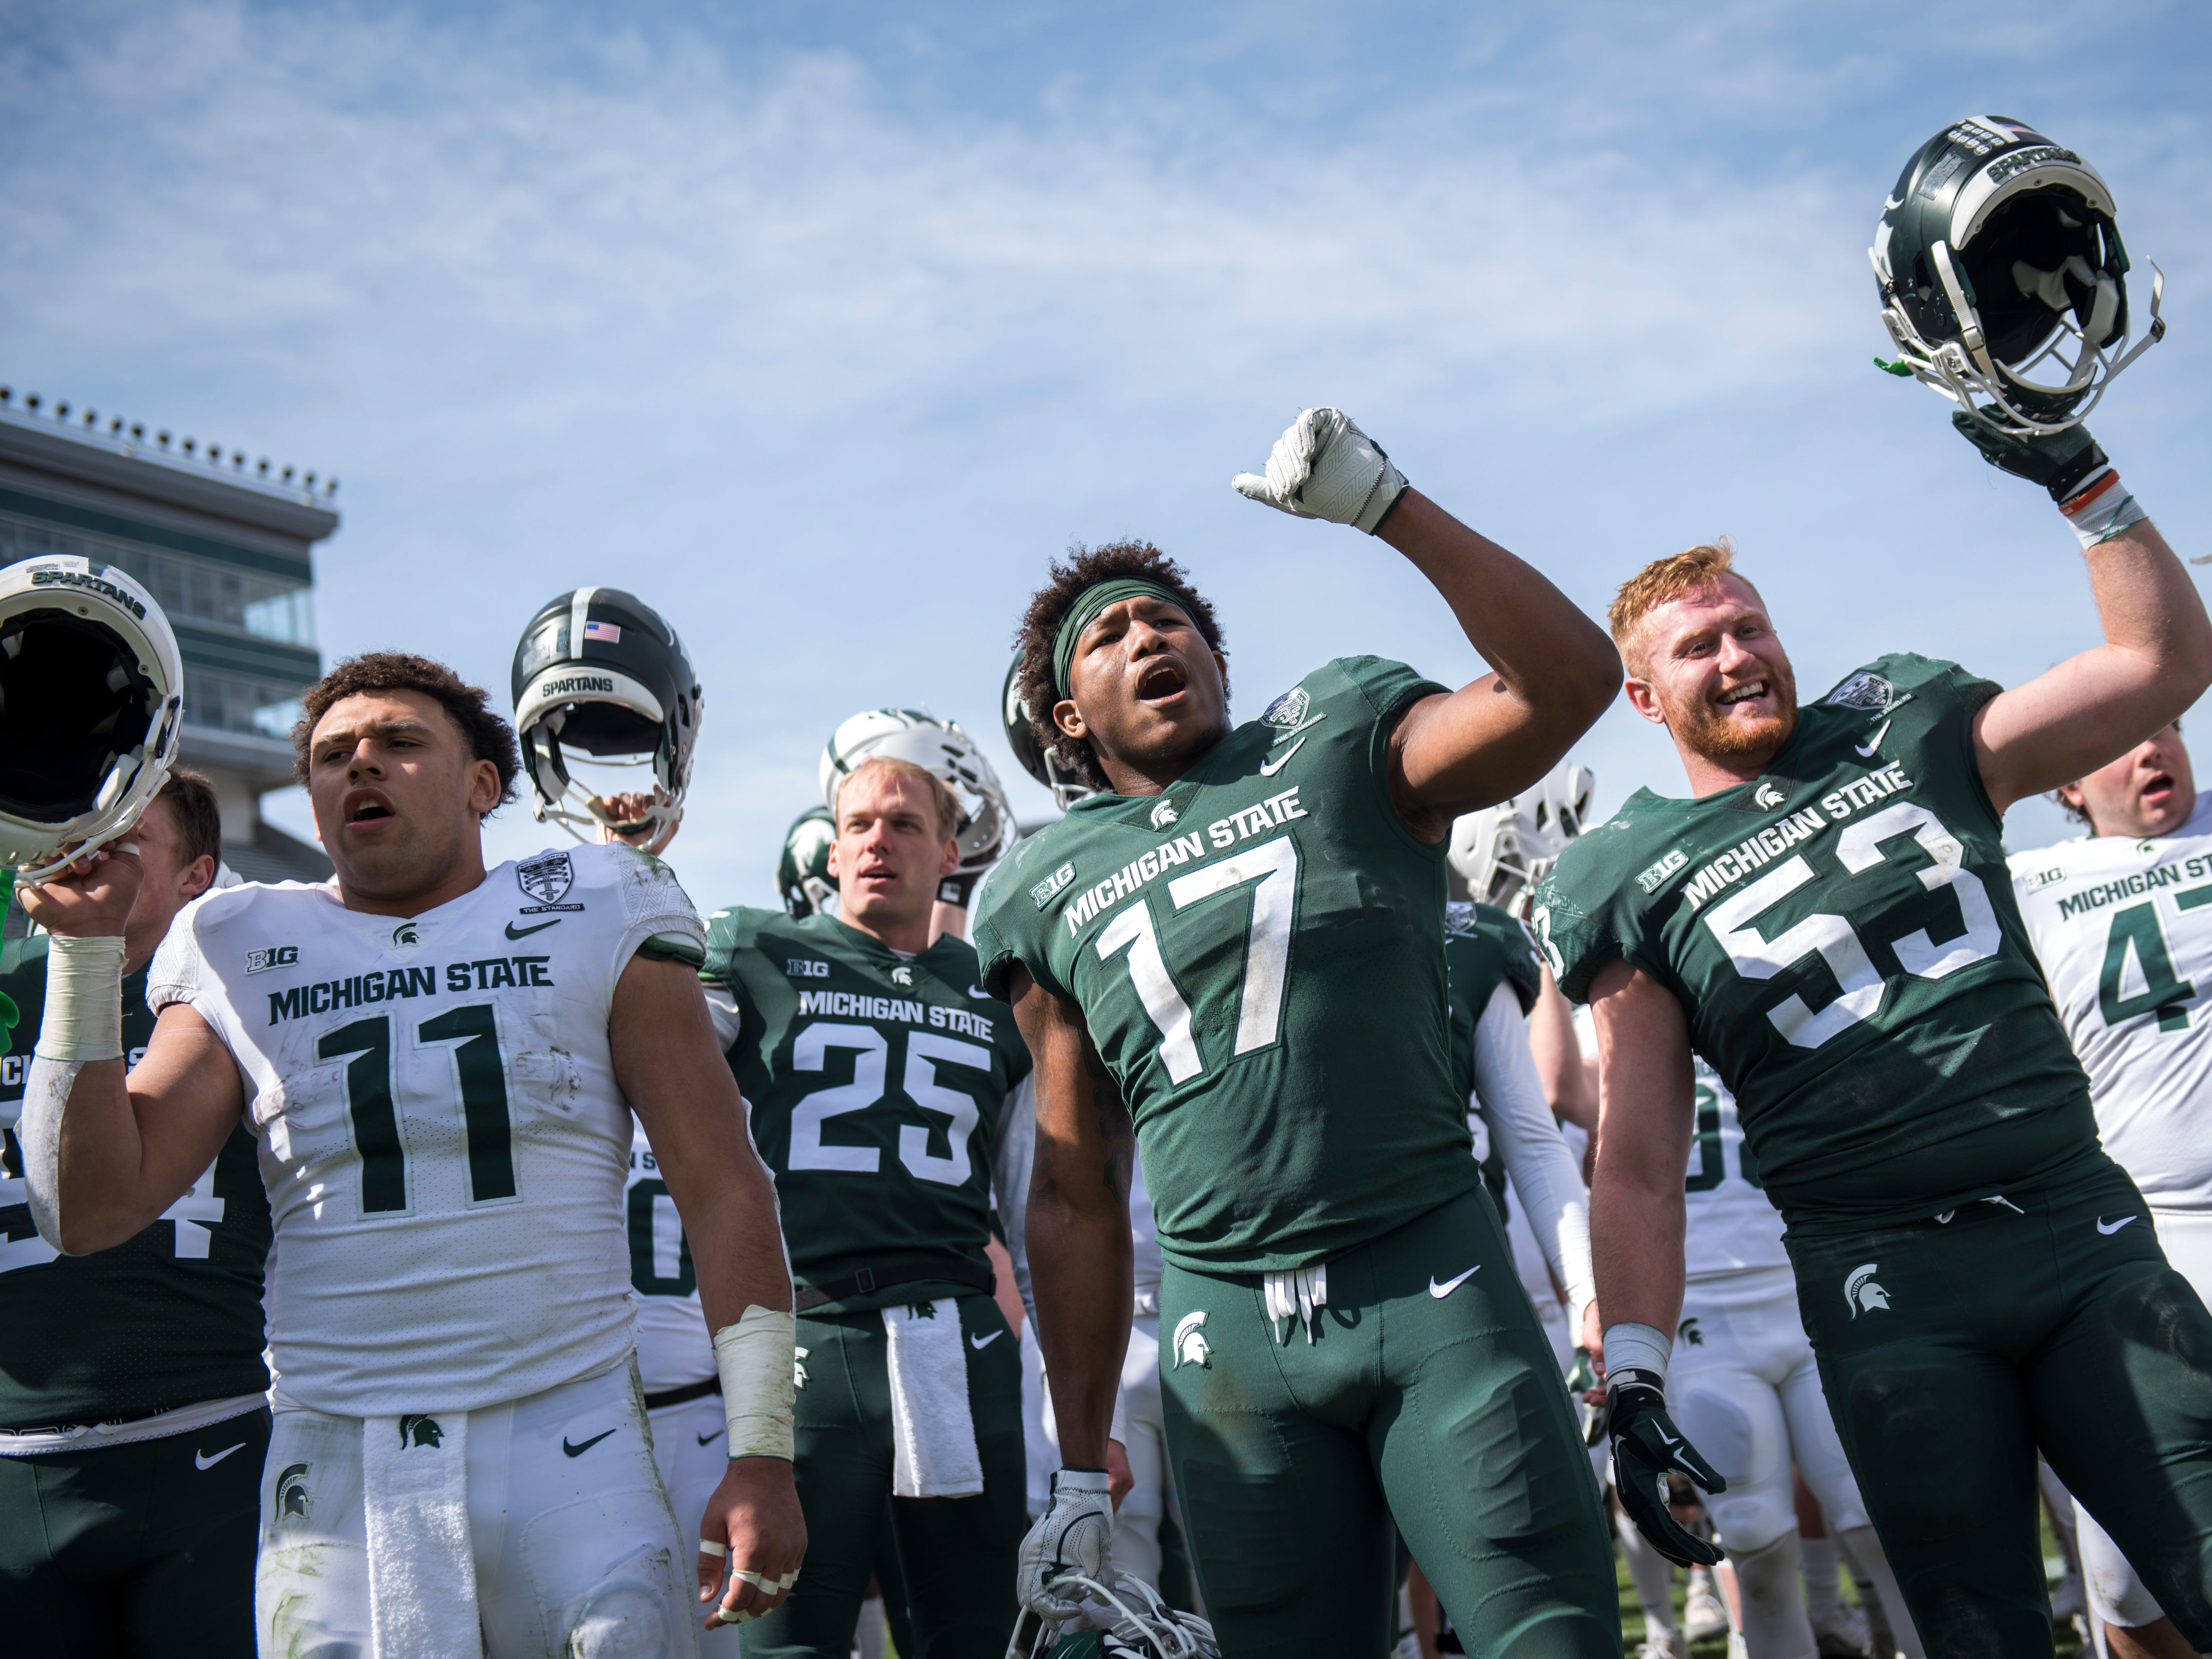 From left, running back Connor Heyward, punter Jake Hartbarger, linebacker Tyriq Thompson and linebacker Peter Fisk sing the fight song.